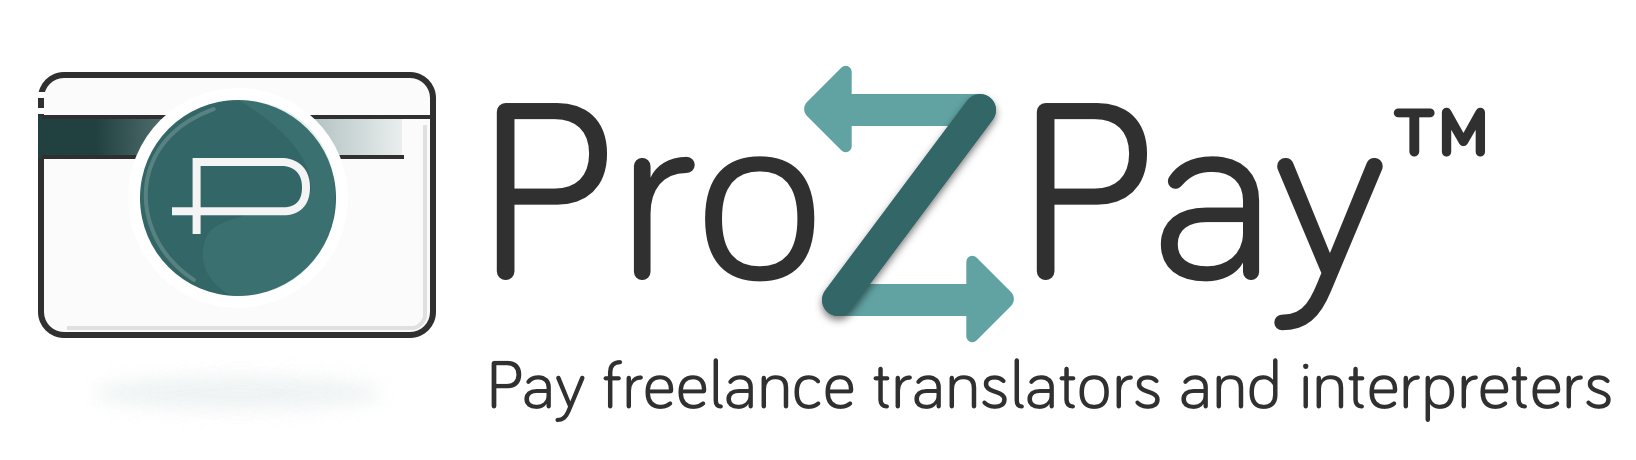 proz-pay-logo%20(1).png?t=1542751487500&width=500&name=proz-pay-logo%20(1).png